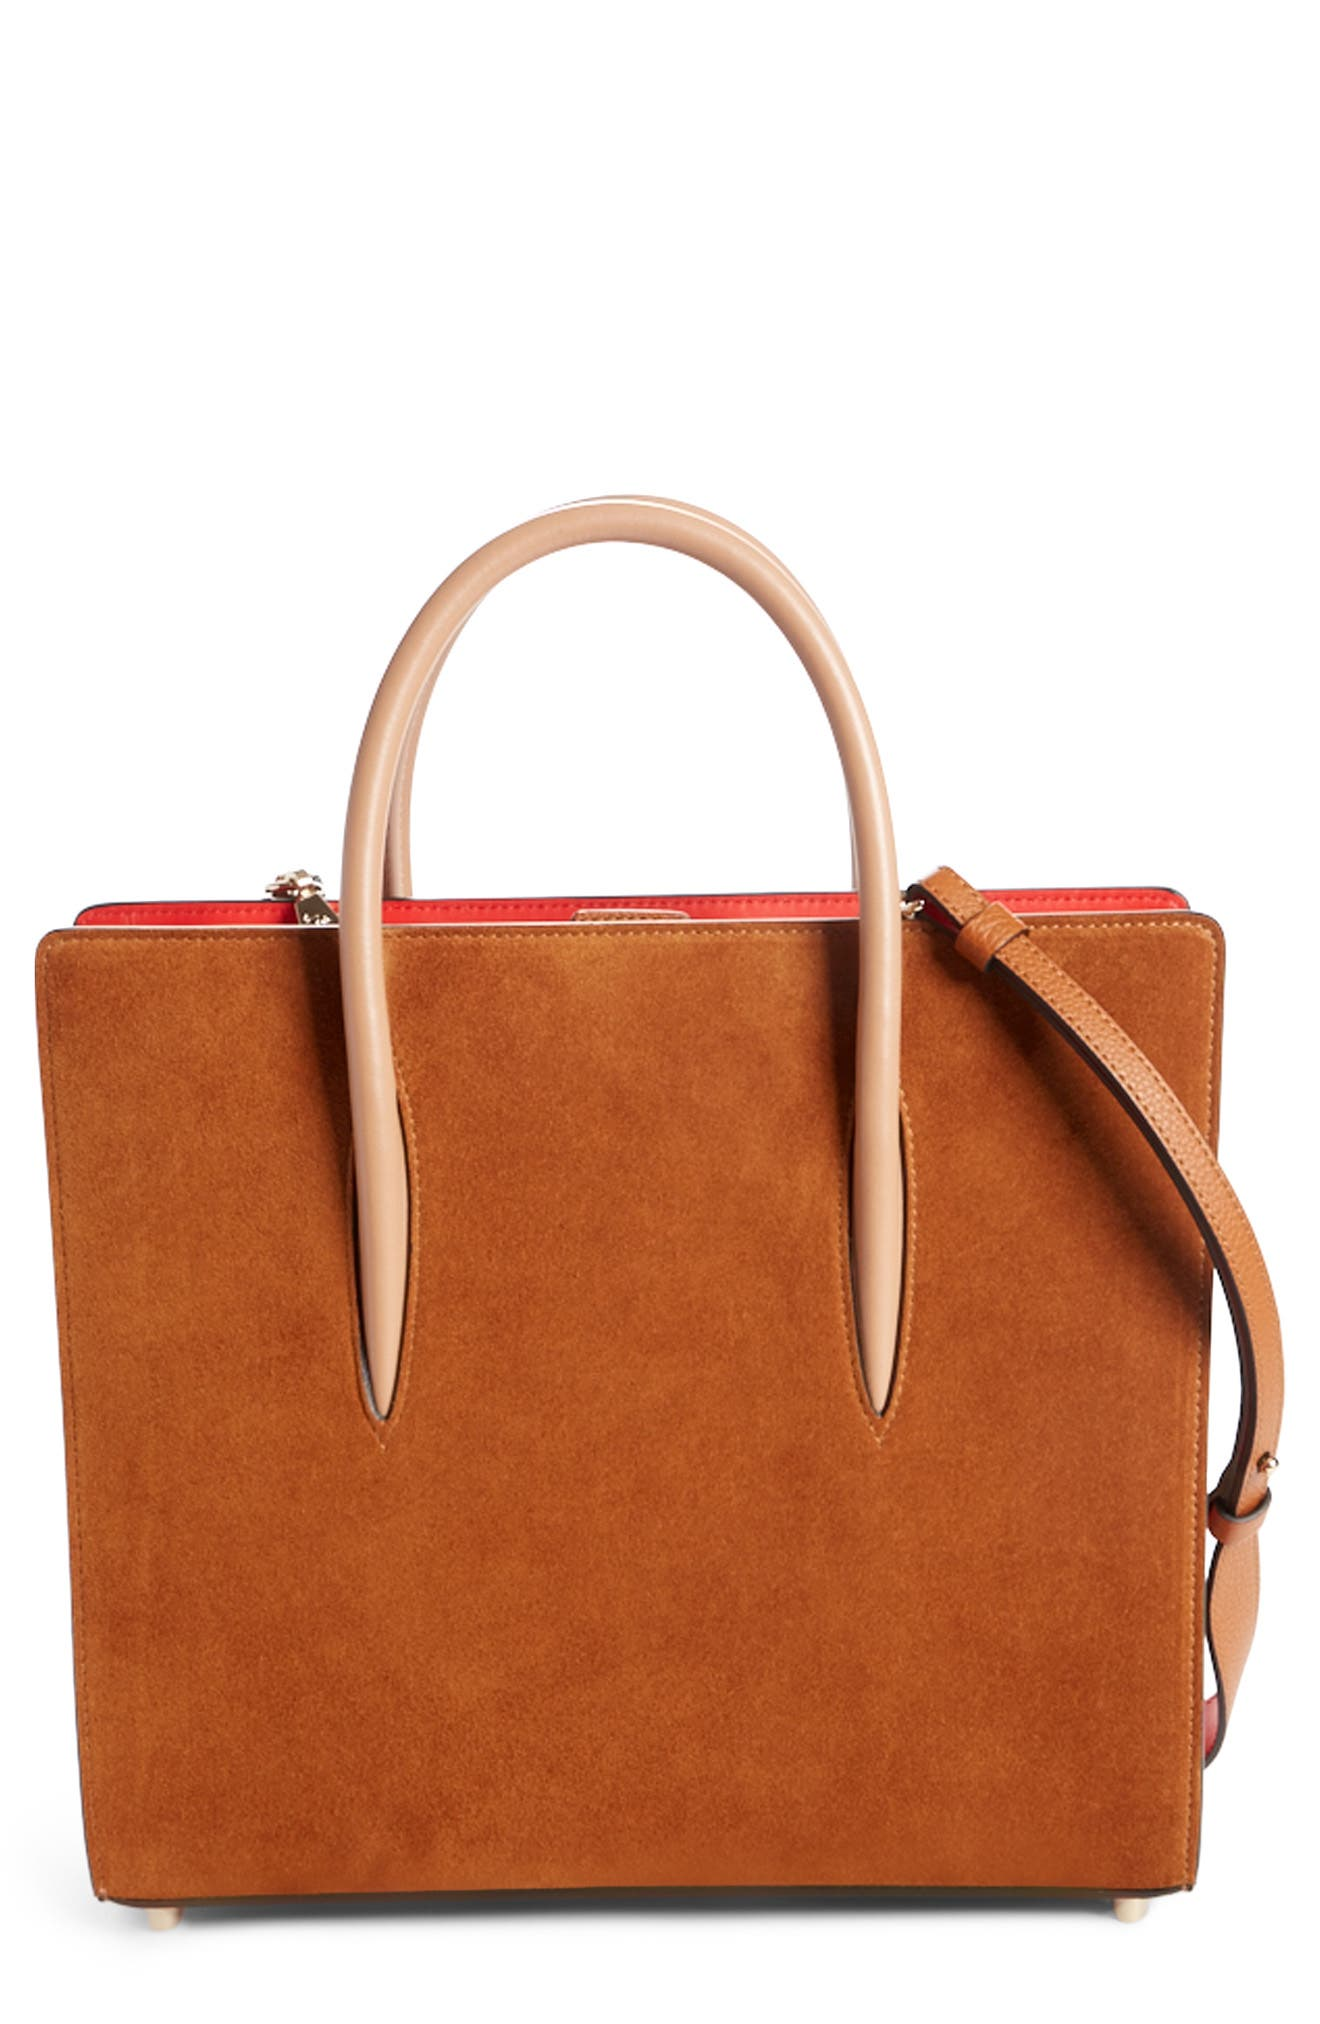 Medium Paloma Loubiwoodstock V Suede & Leather Tote,                         Main,                         color, Cannelle/ Cannelle